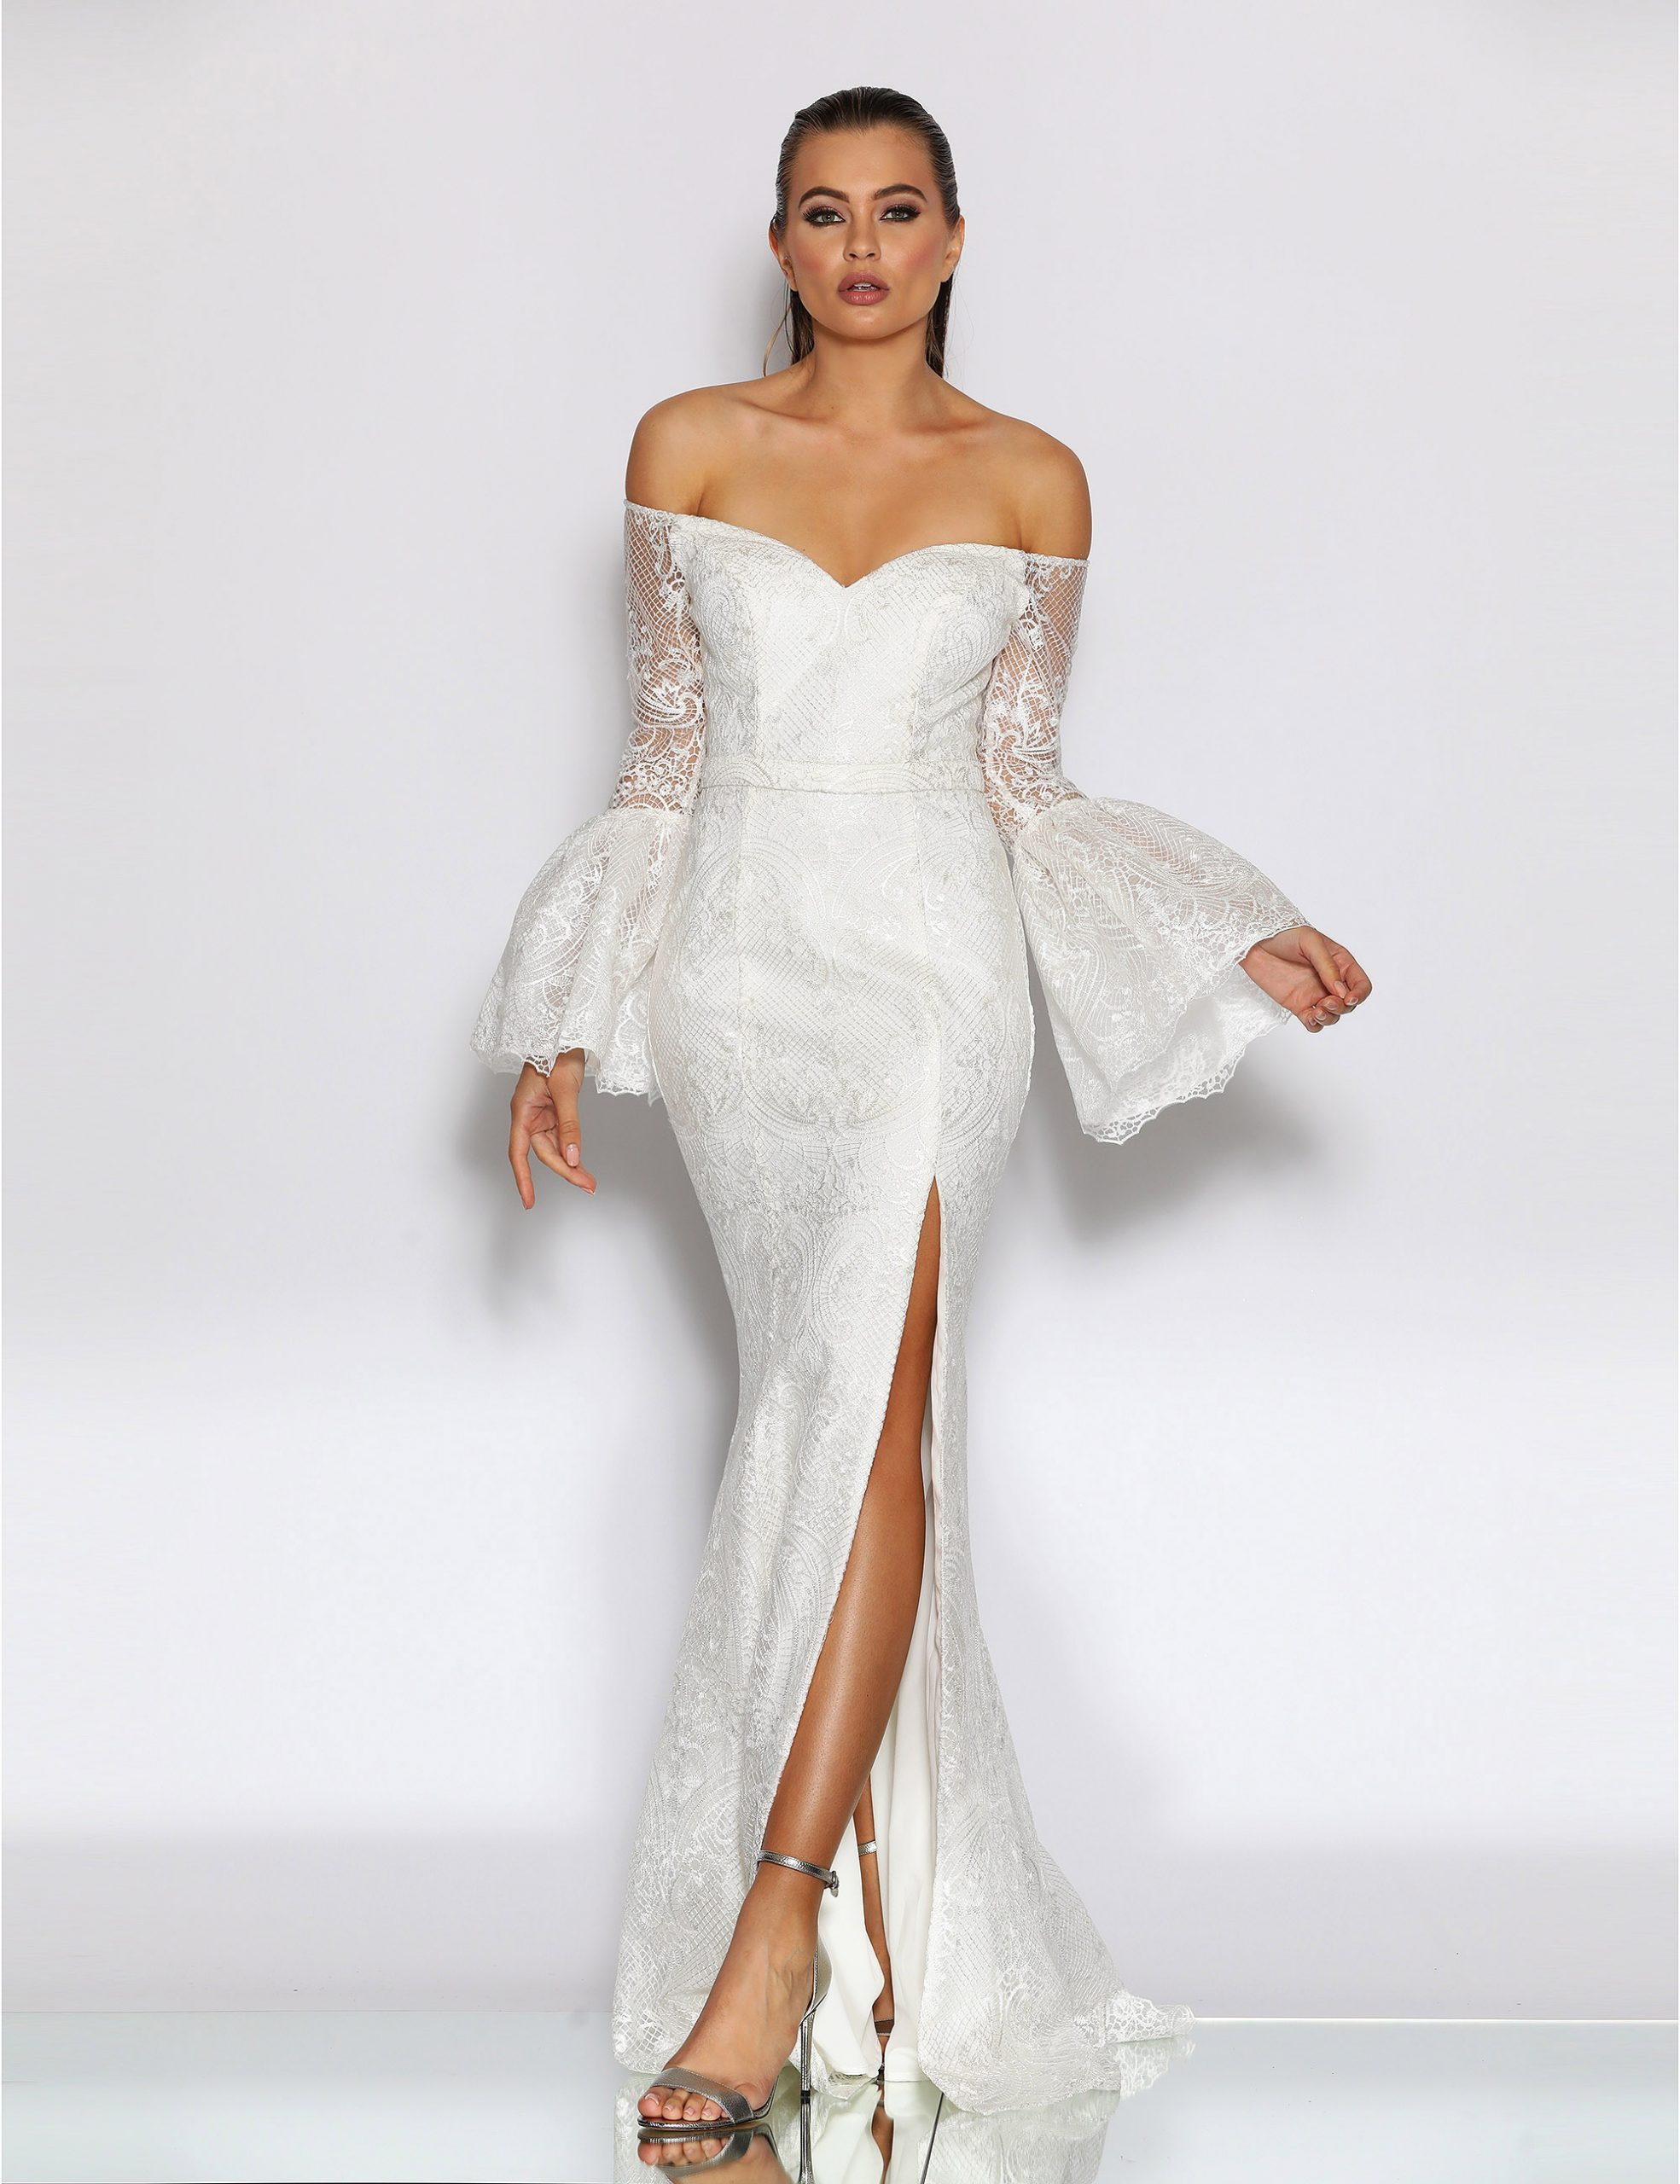 weddingdress4